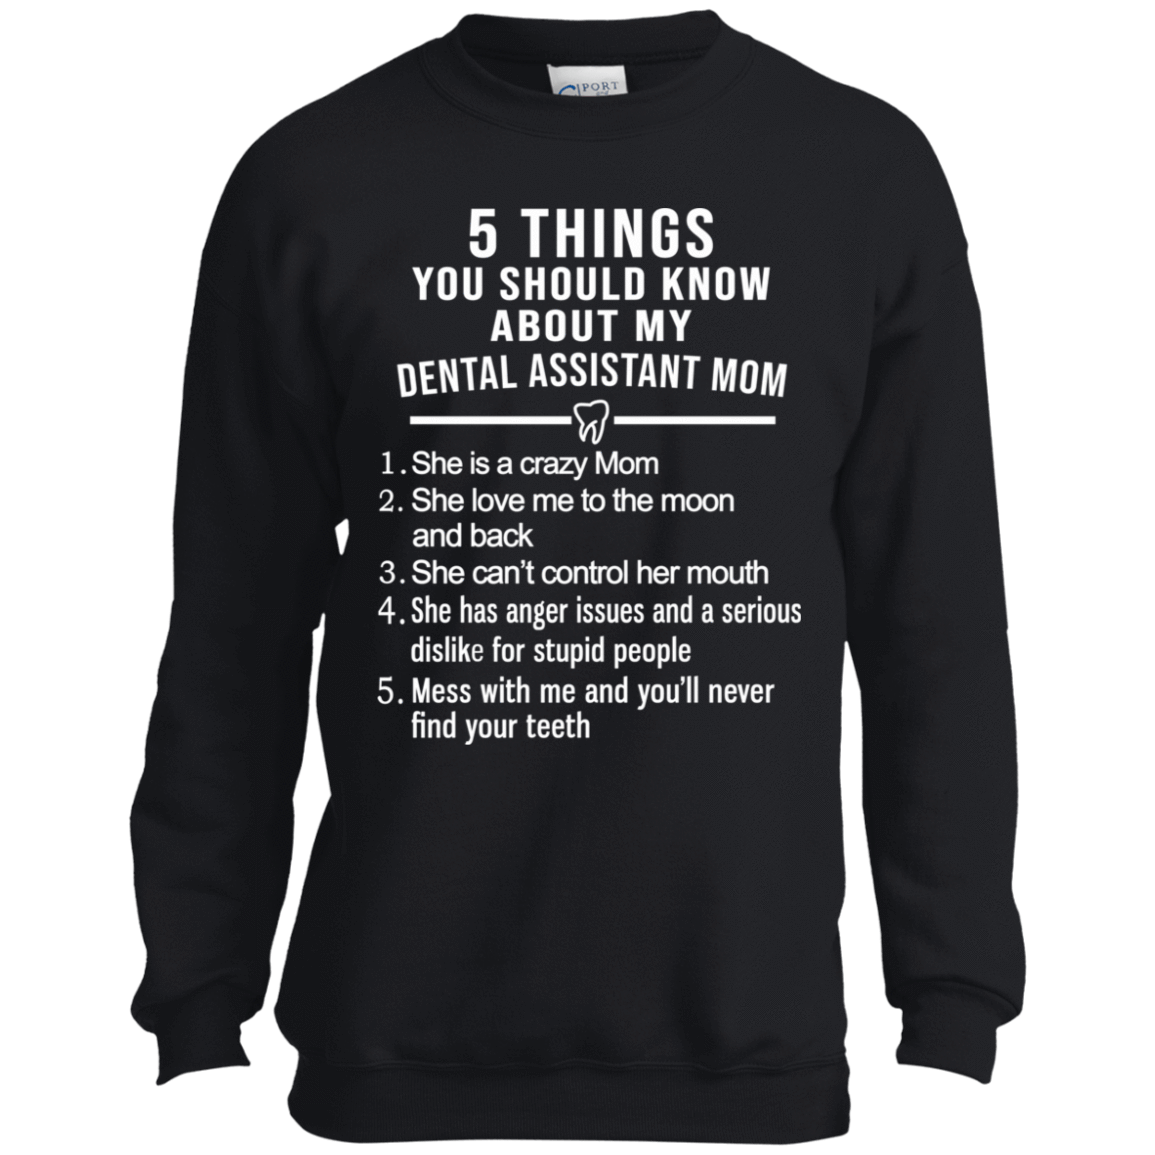 5 Things You Should Know About My Dental Assistant Mom Youth 58-327-73892528-35266 - Tee Ript